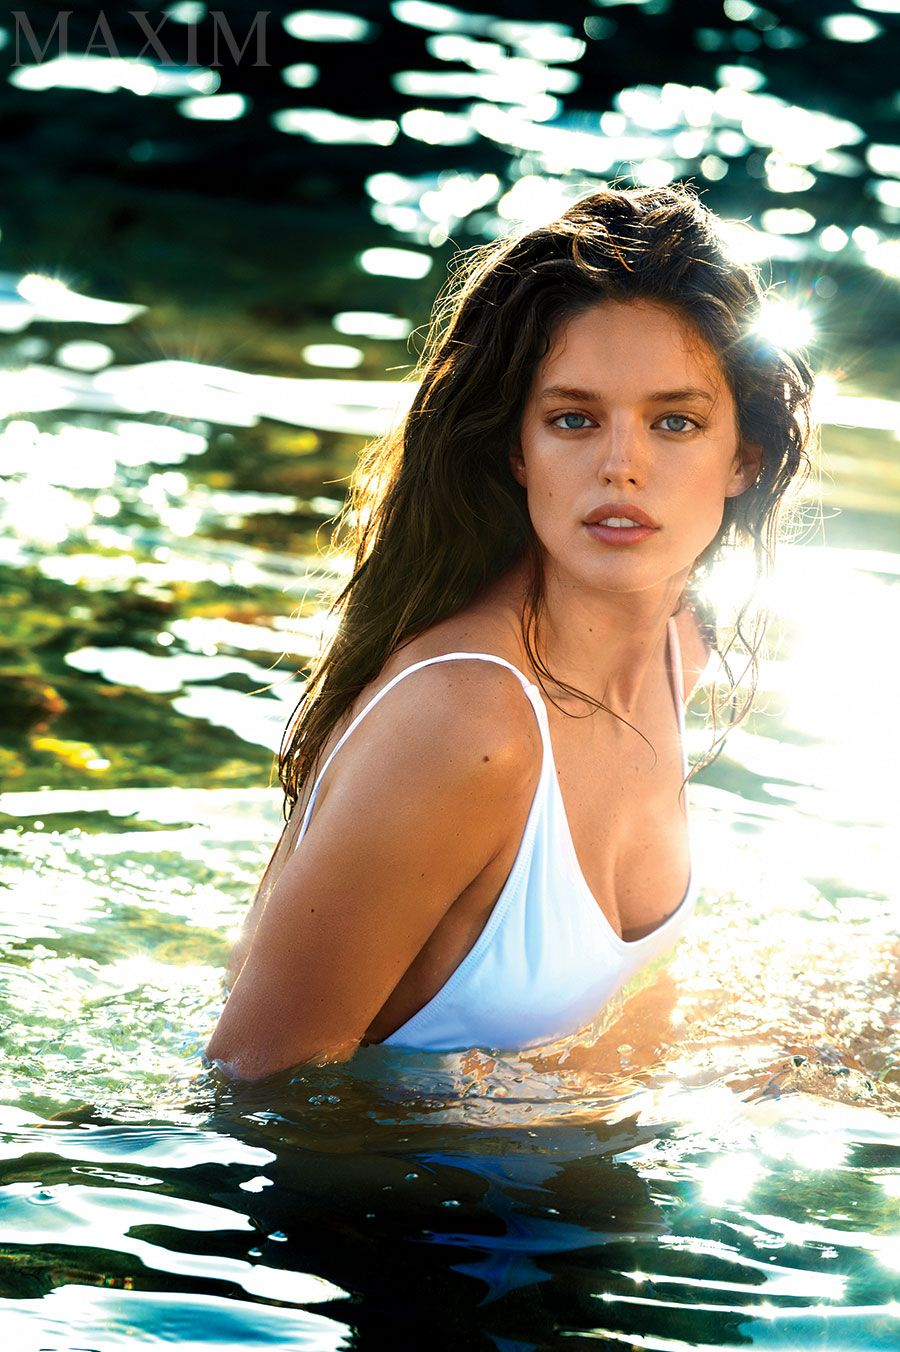 Emily DiDonato Sexy 7 TheFappening.nu